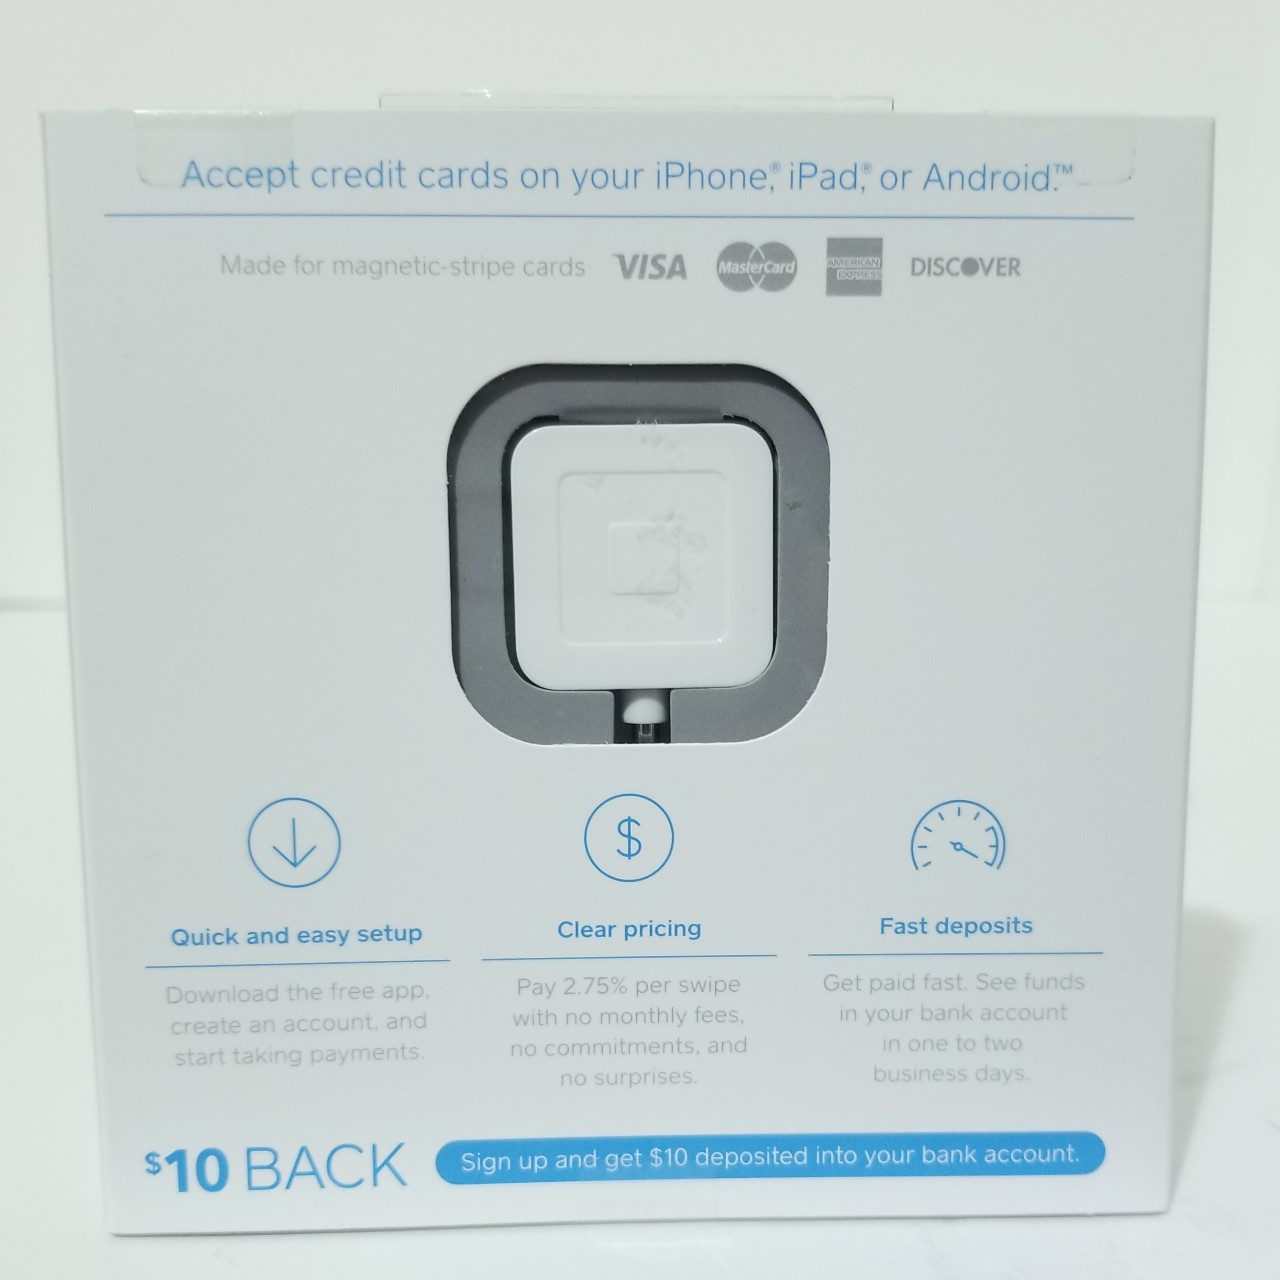 how do i download the square card reader app